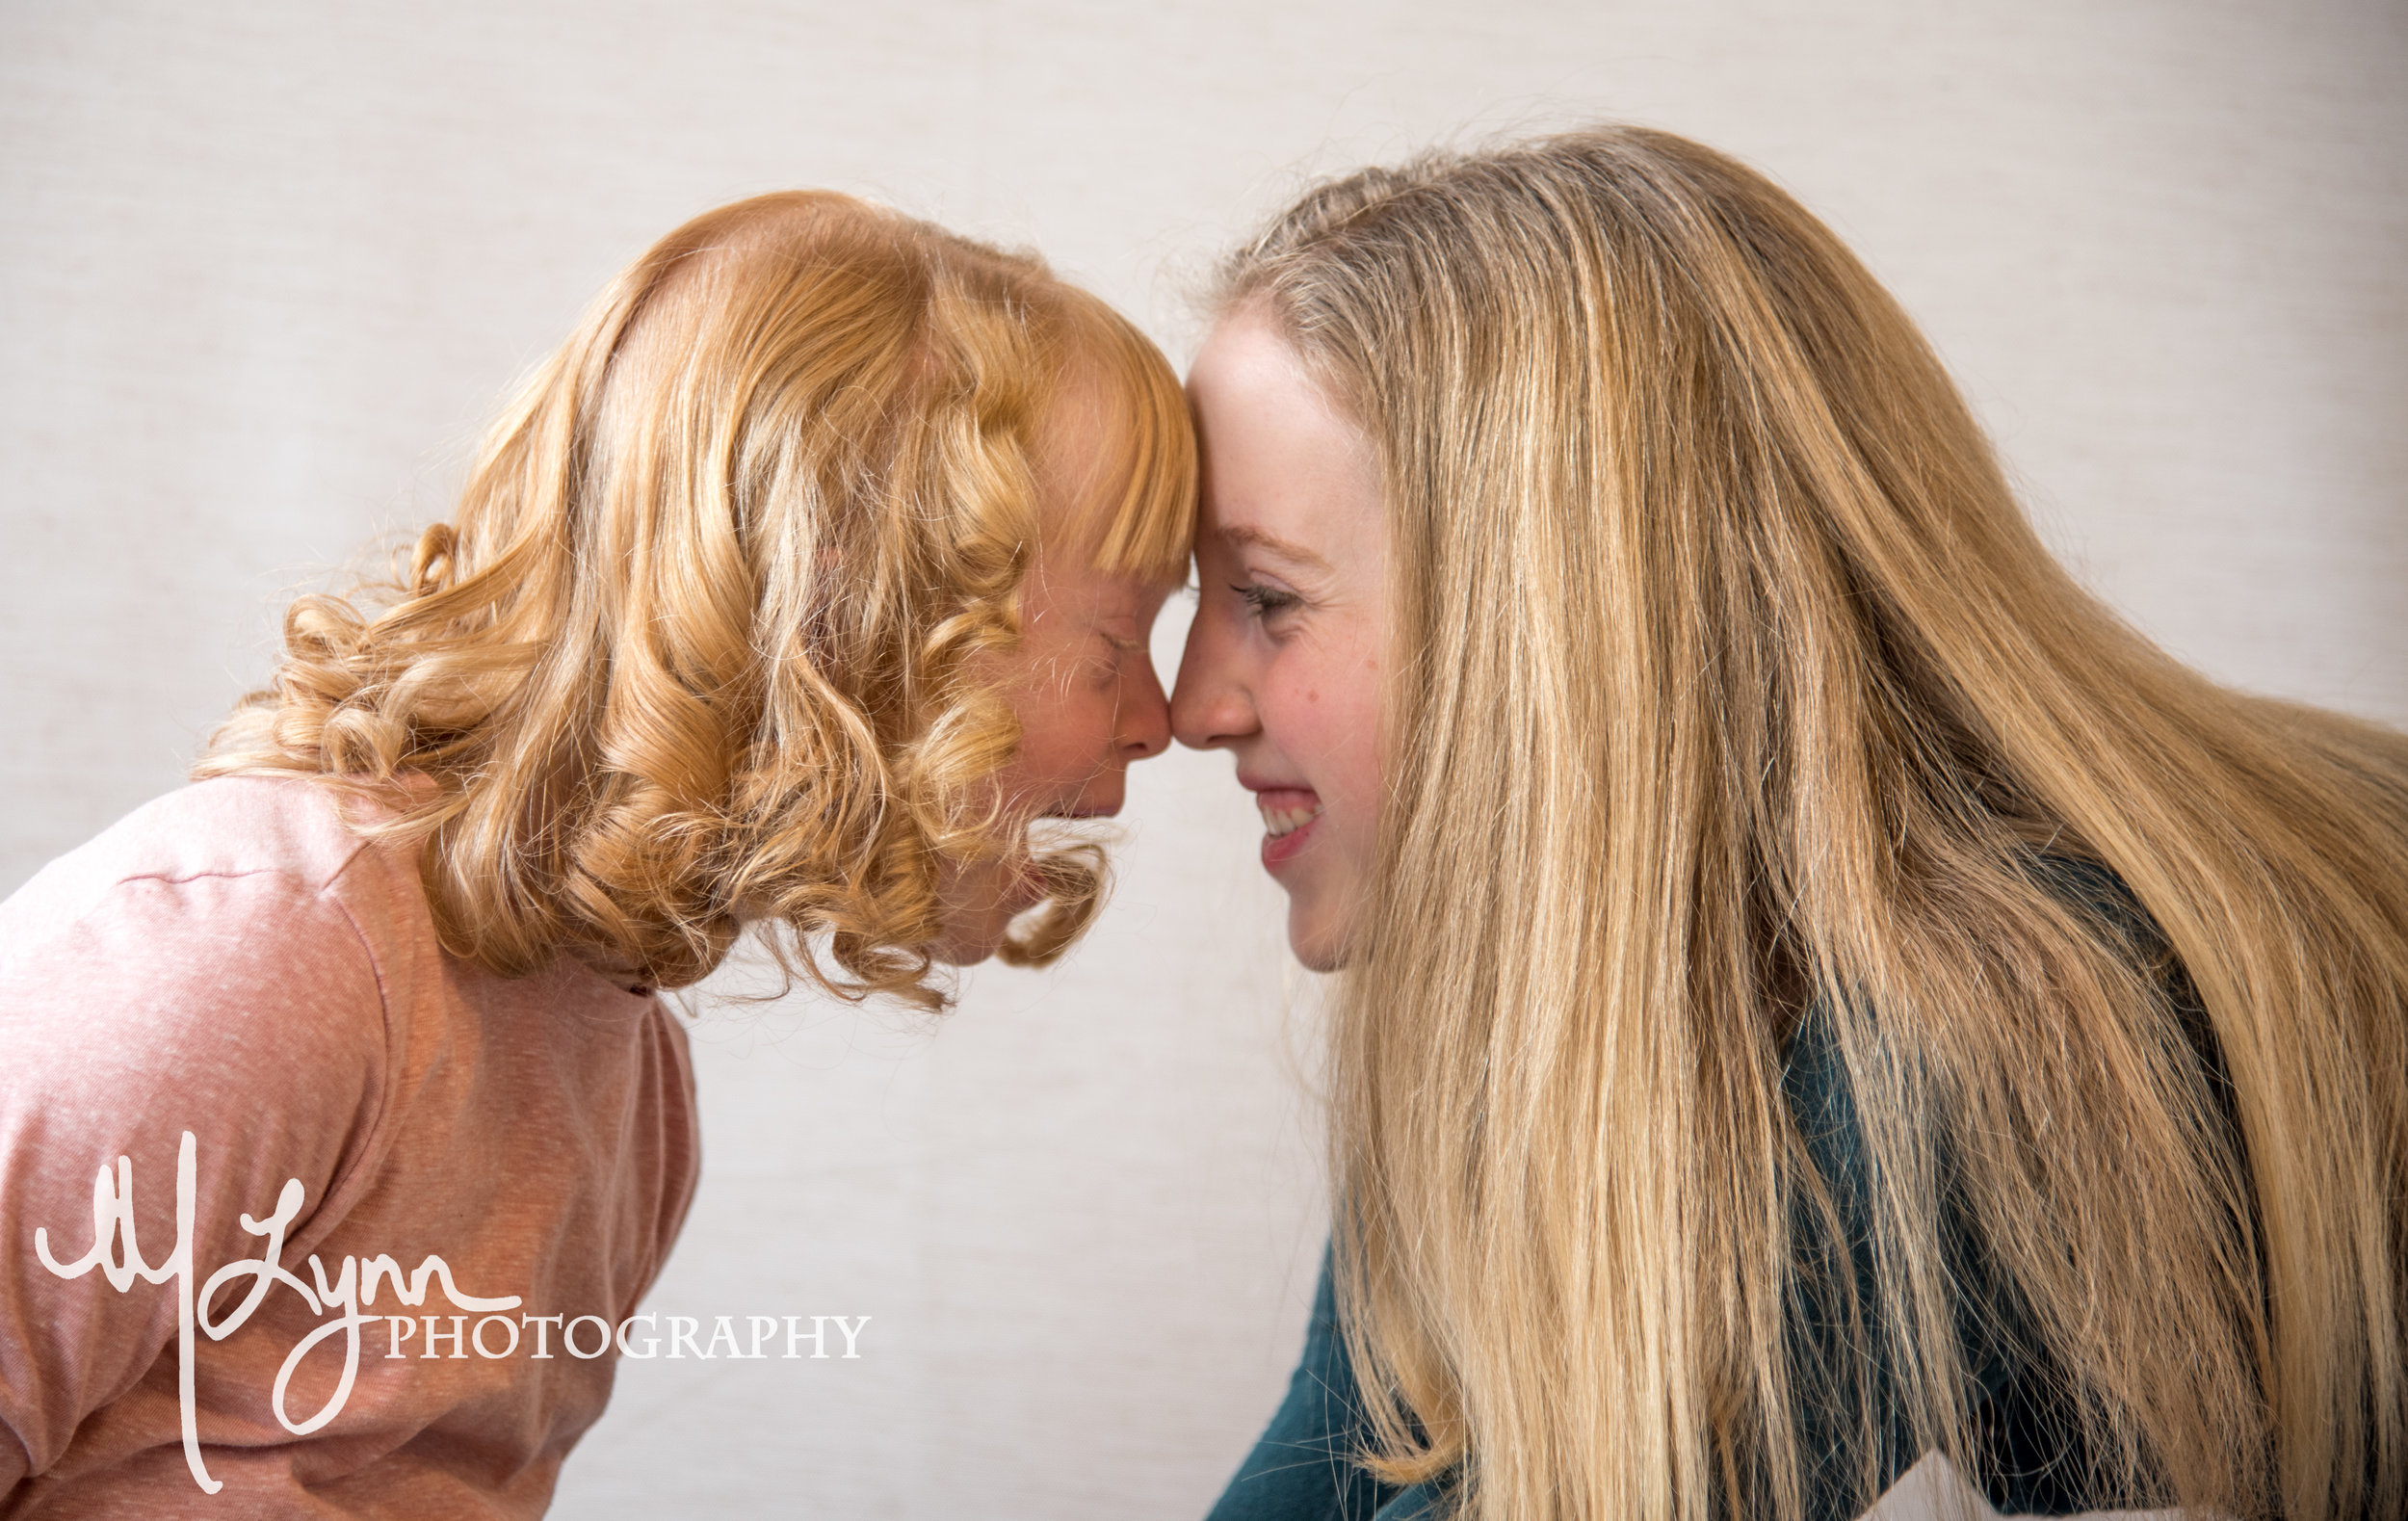 sisters rubbing noses